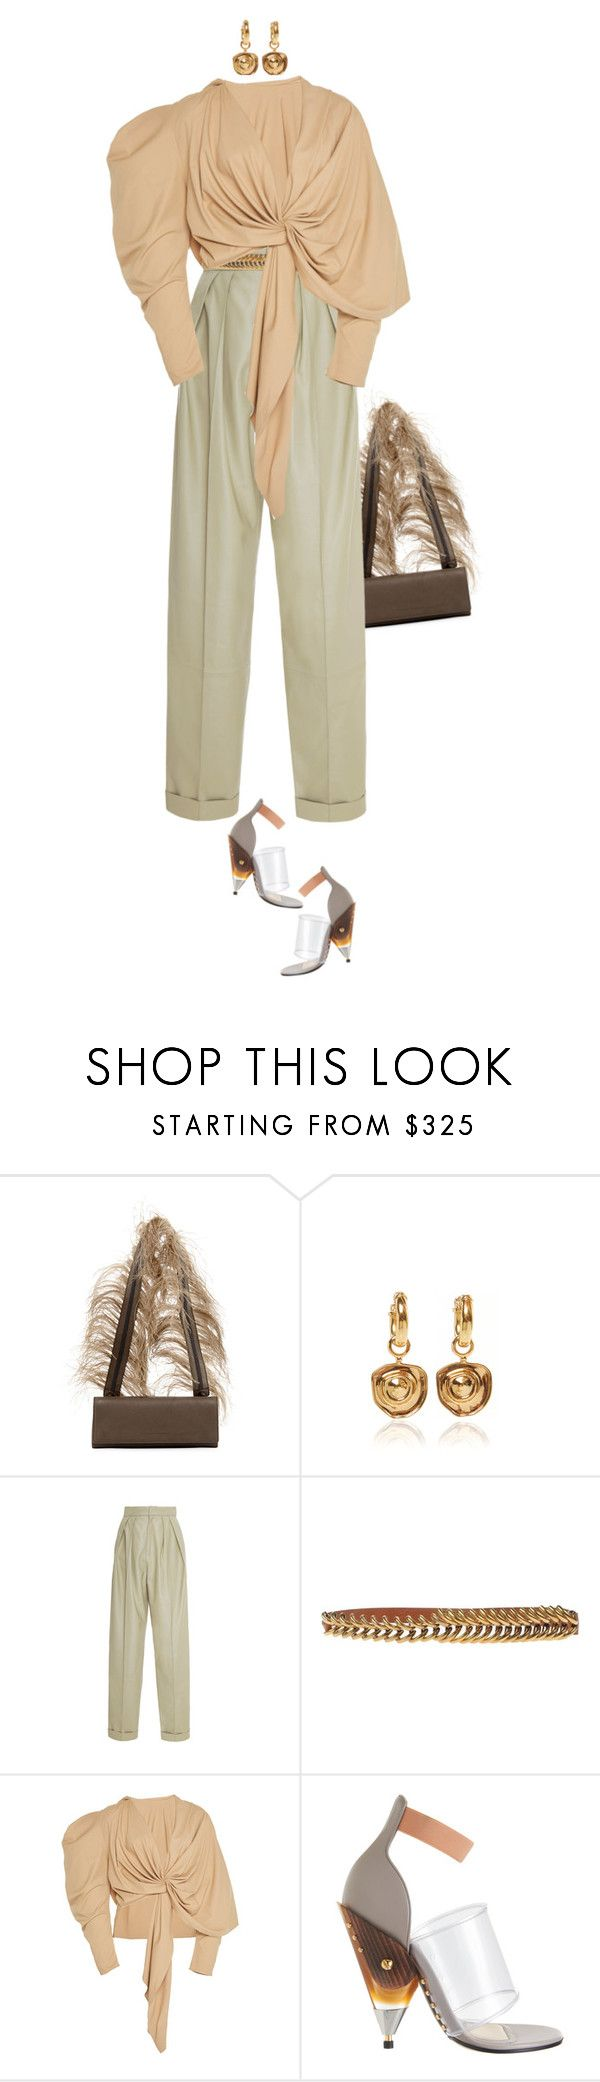 """bens materiais"" by nandusho ❤ liked on Polyvore featuring Brunello Cucinelli, Zeynep Arçay, Vionnet, Givenchy and WorkWear"